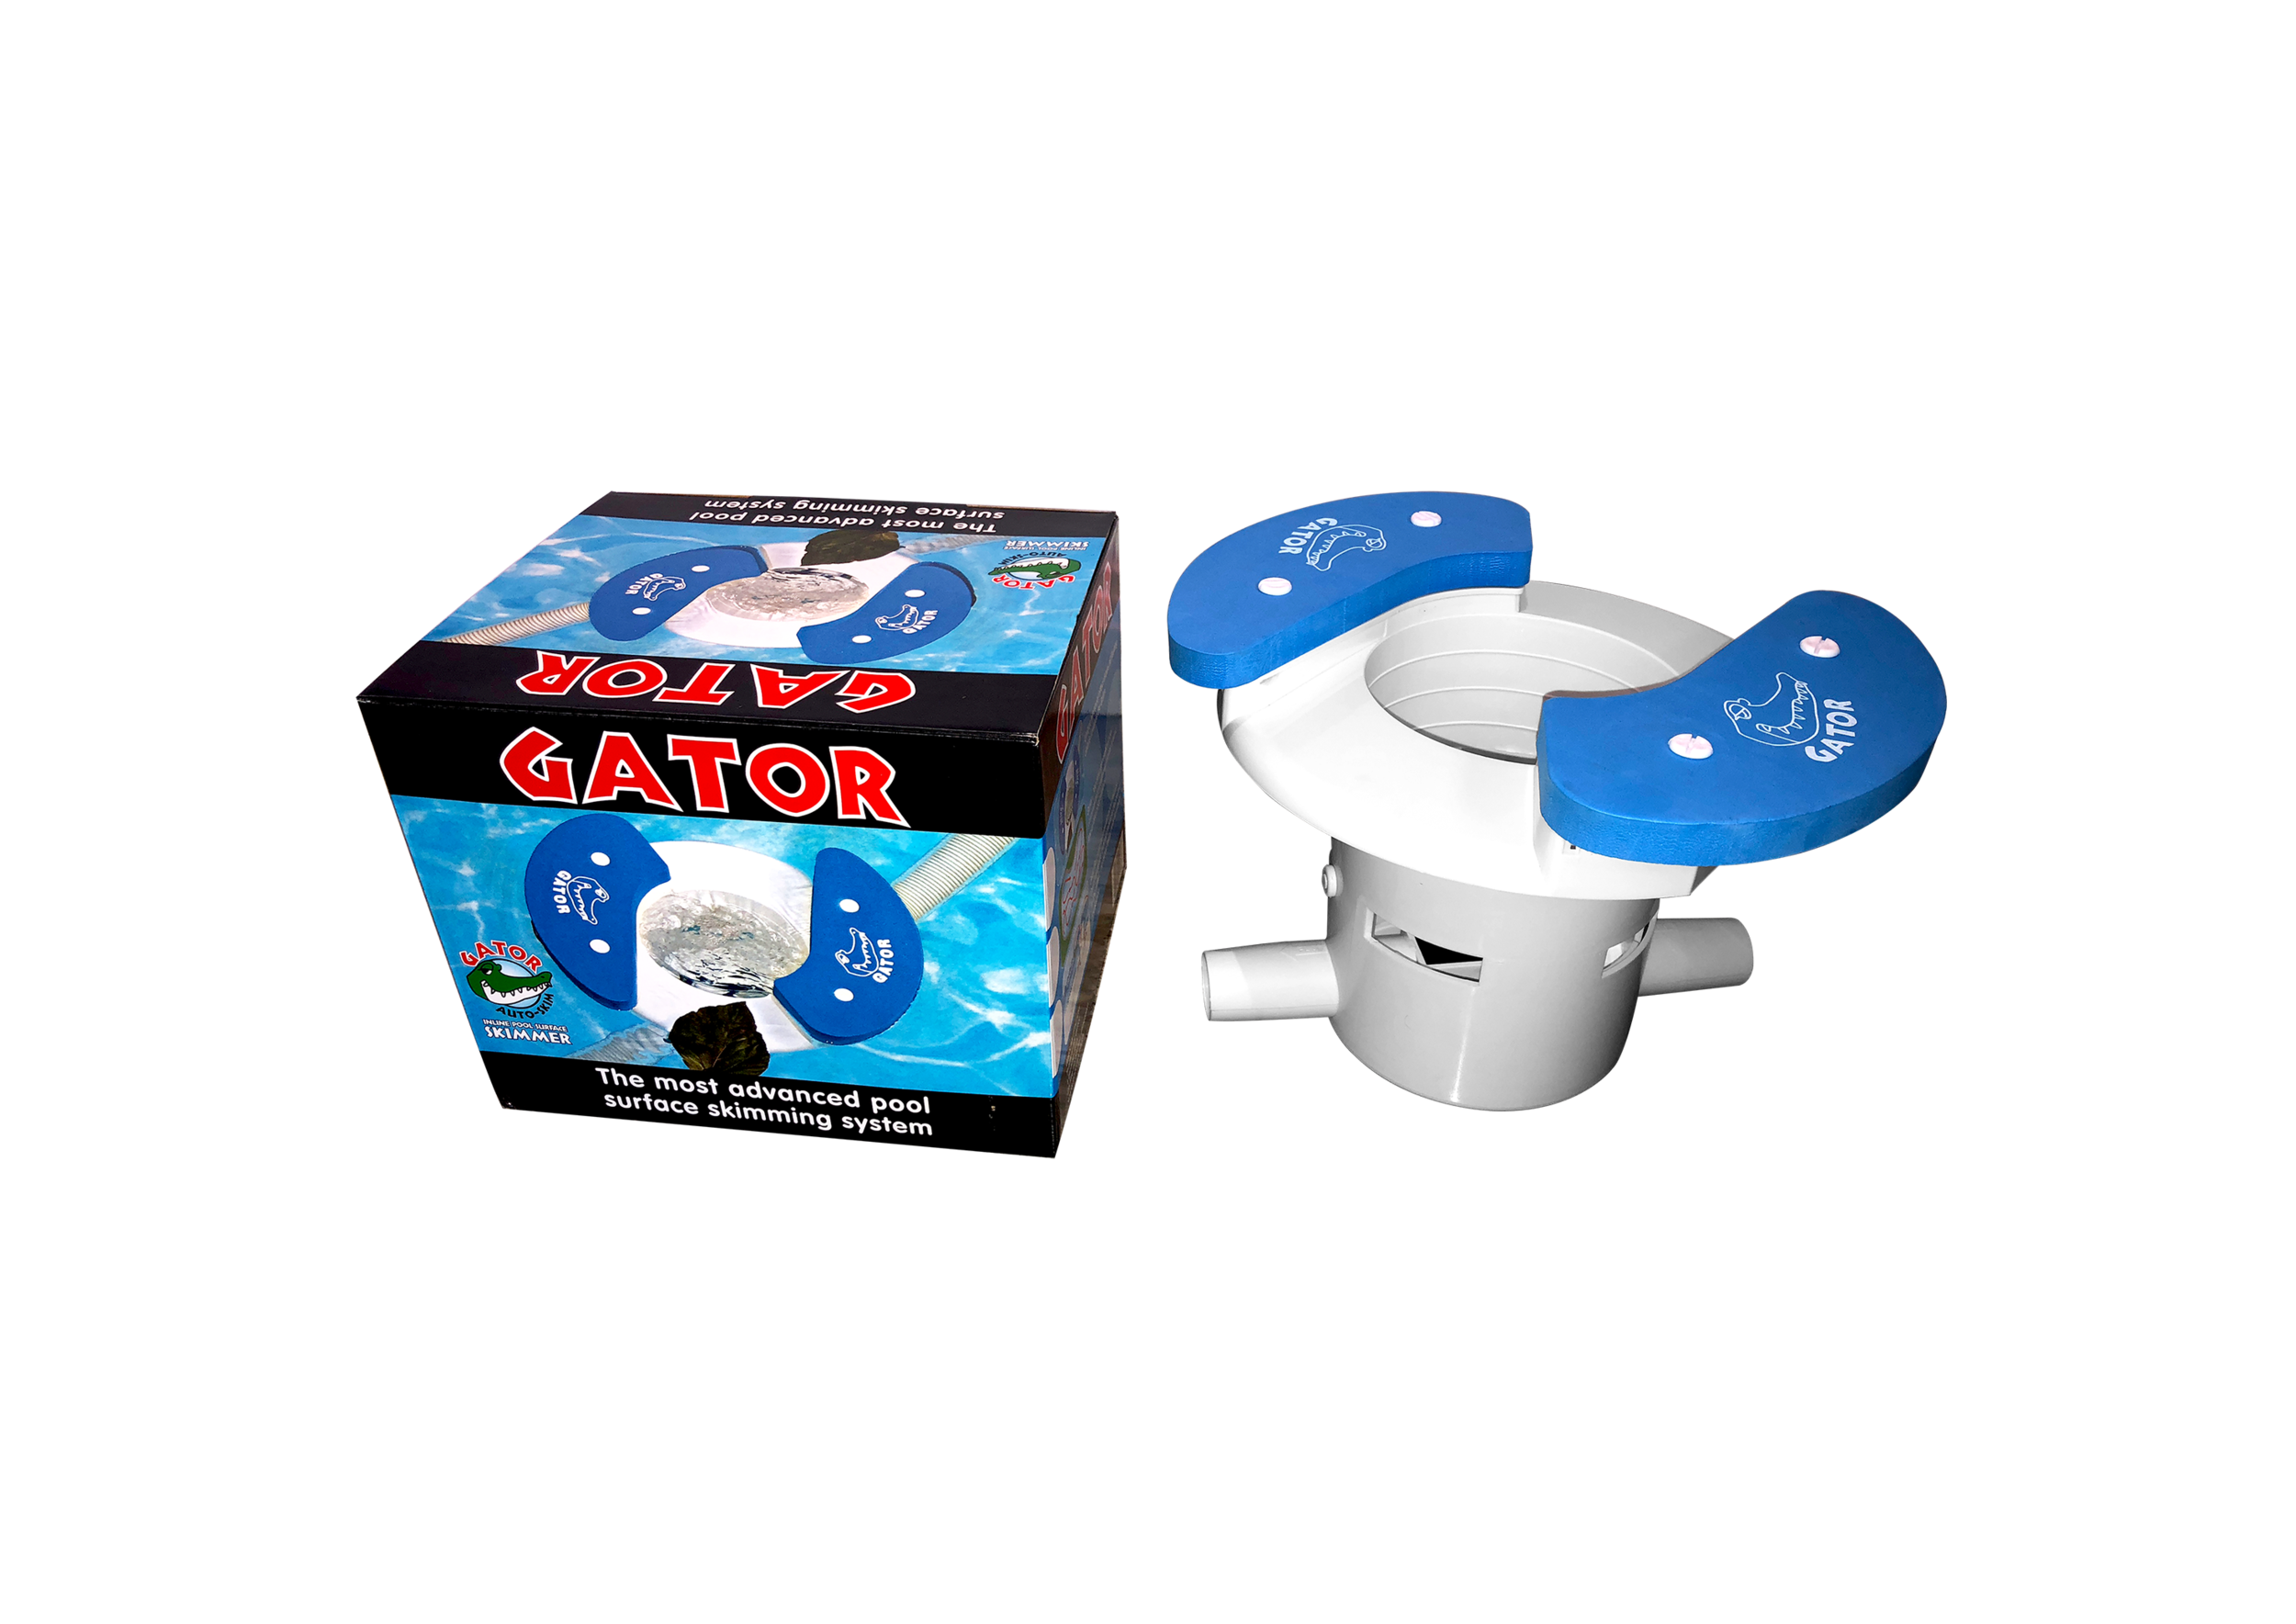 gator + packaging skimmer.png